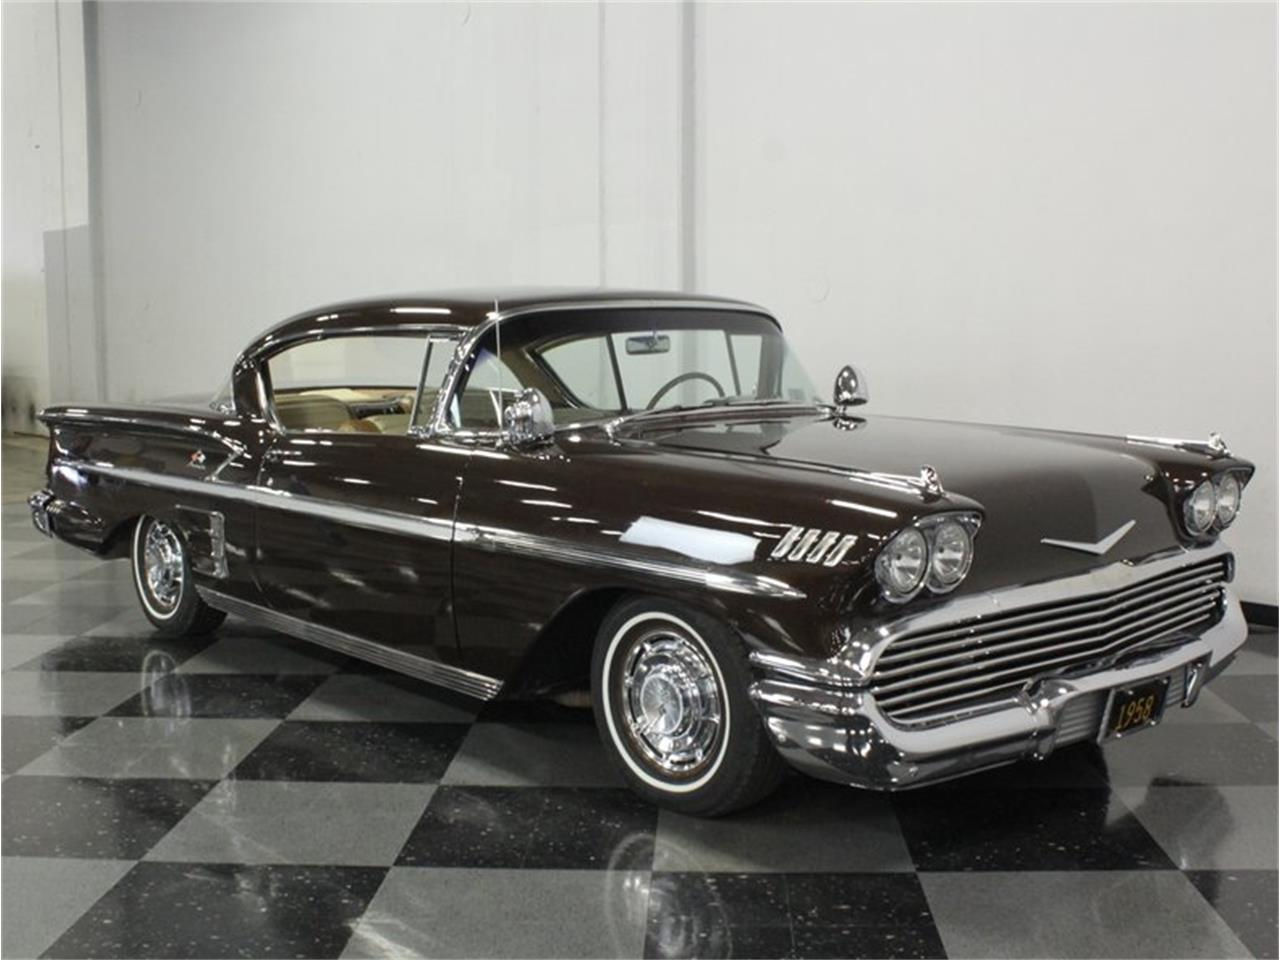 Large Picture of Classic '58 Impala located in Texas - $44,995.00 Offered by Streetside Classics - Dallas / Fort Worth - HX8B